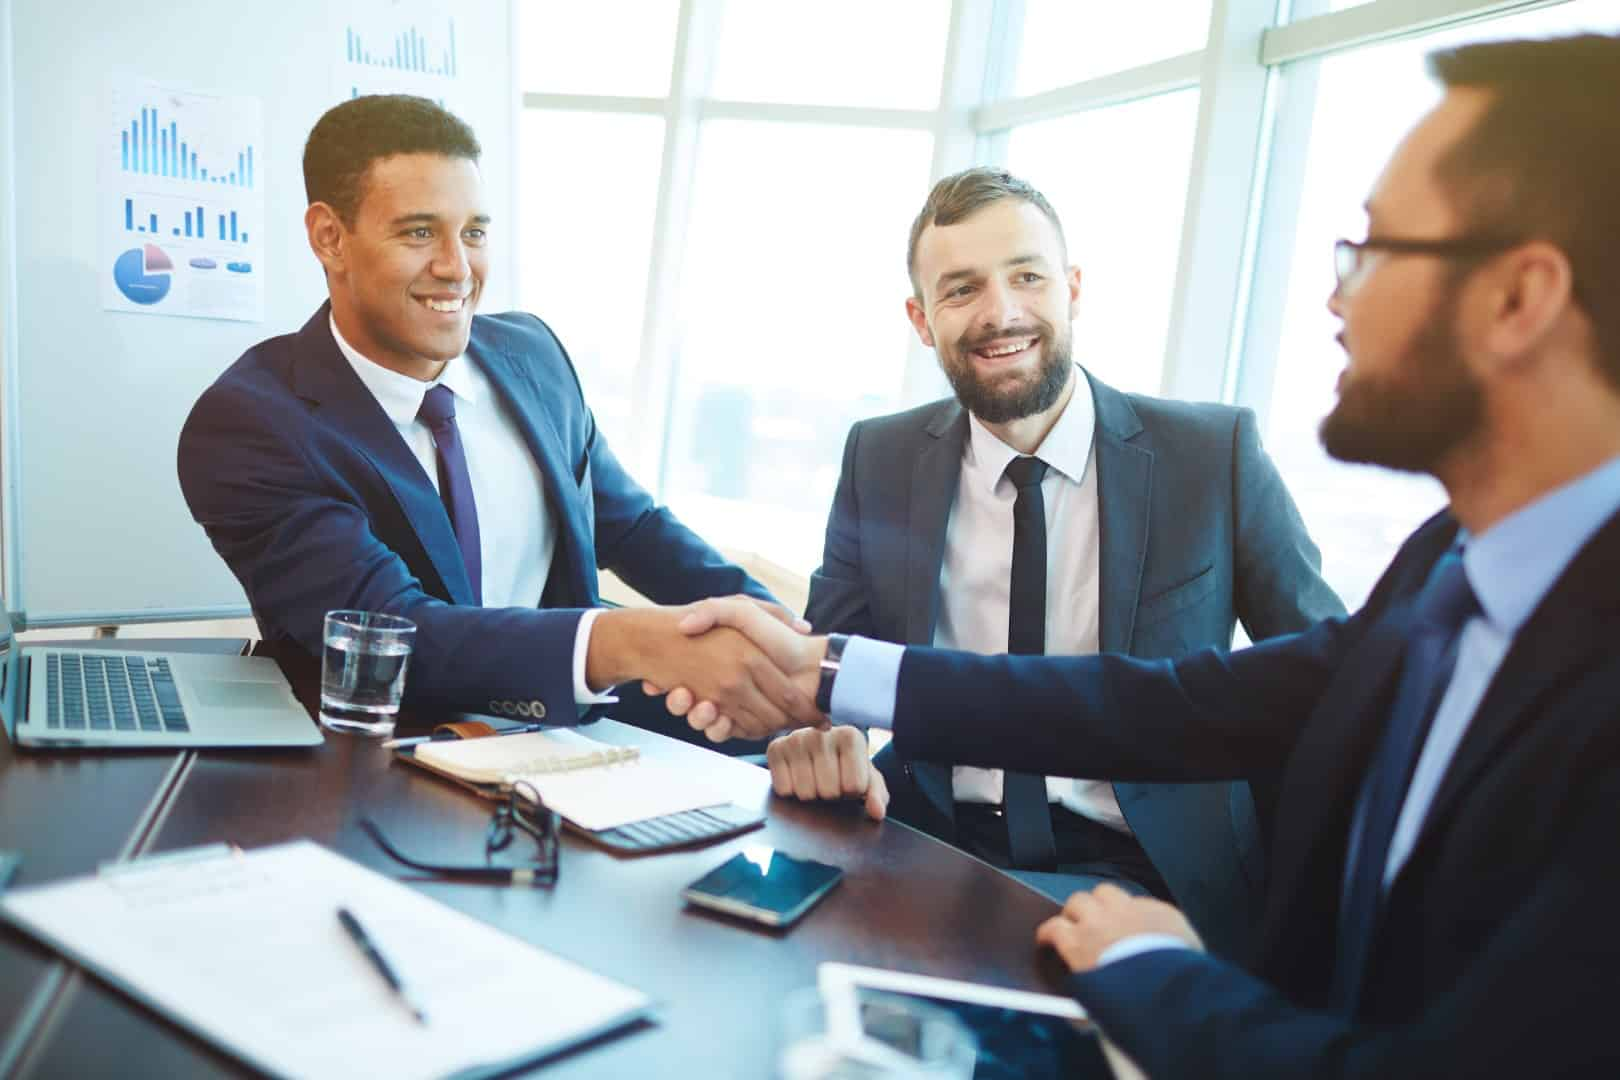 Agents shaking hands after a successful negoation.